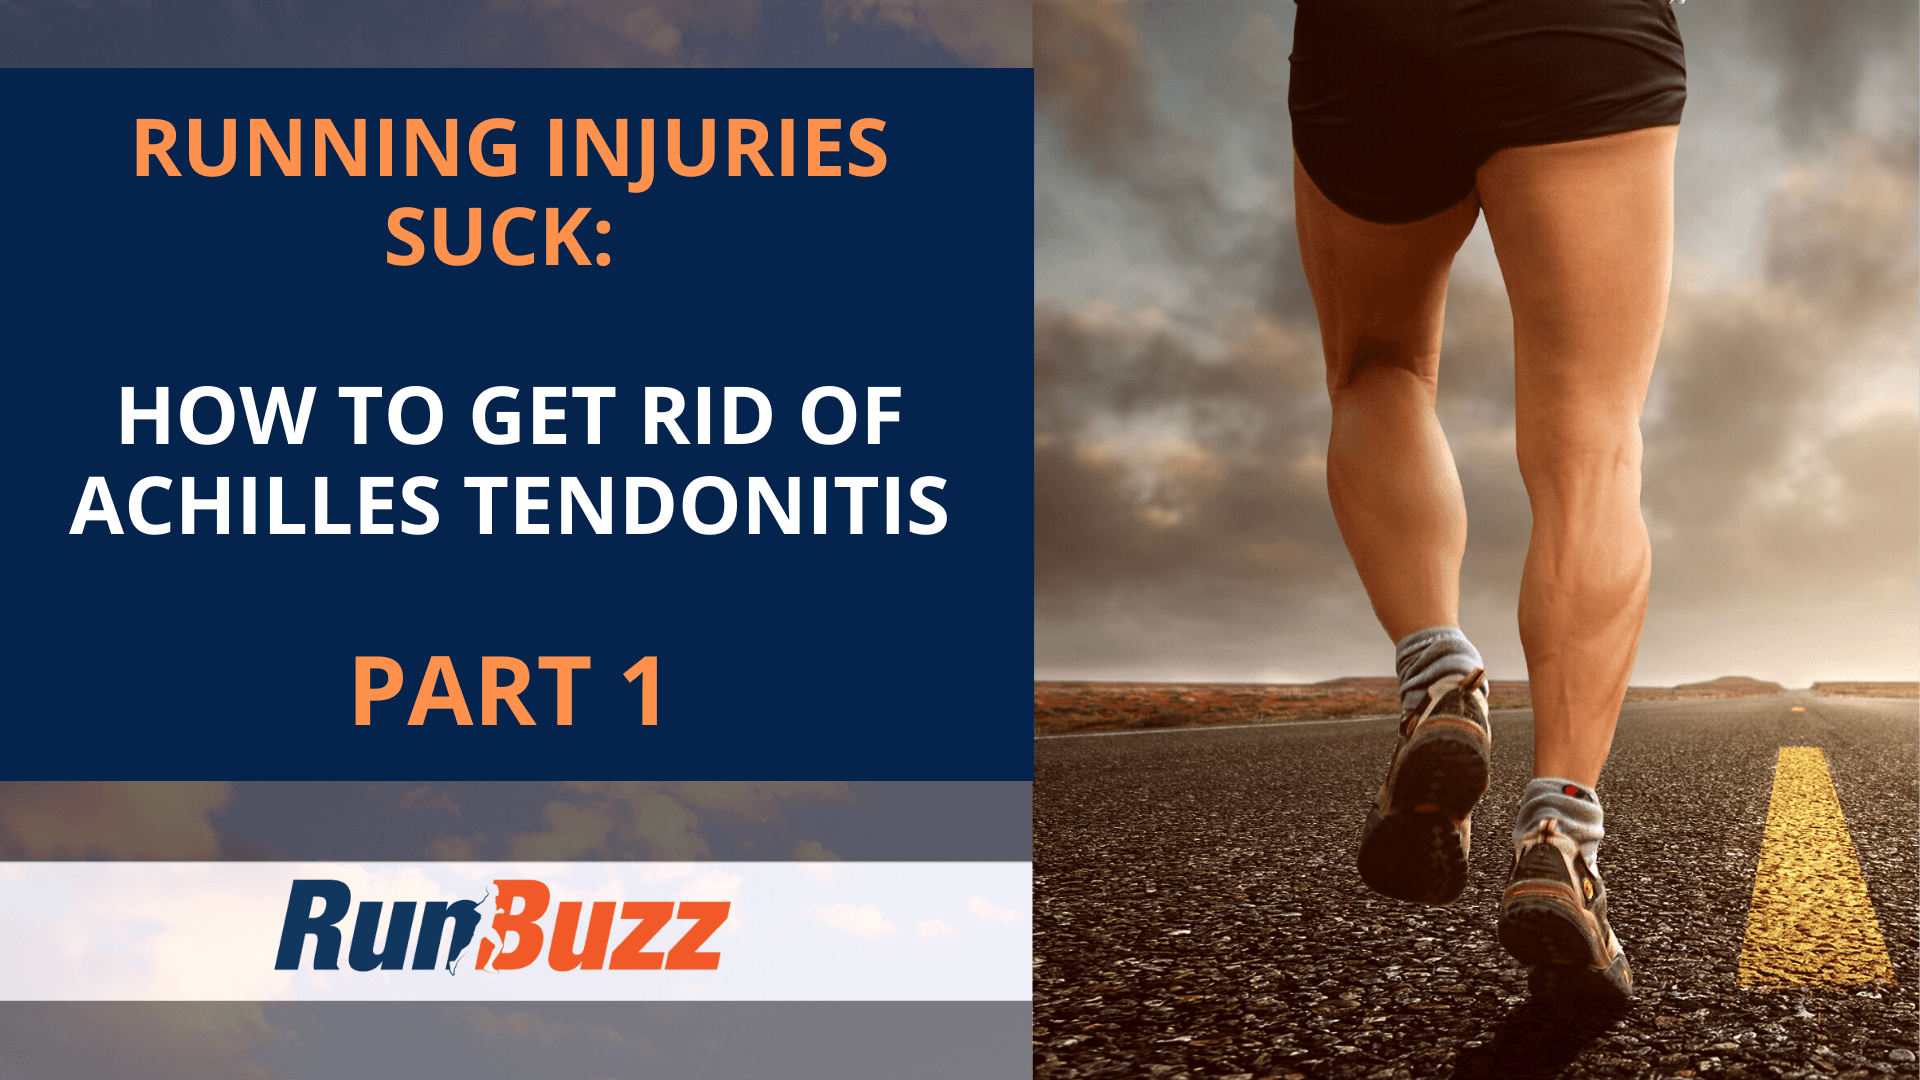 Running-Injuries-Suck_-How-To-Get-Rid-Of-Achilles-Tendonitis-Part-1